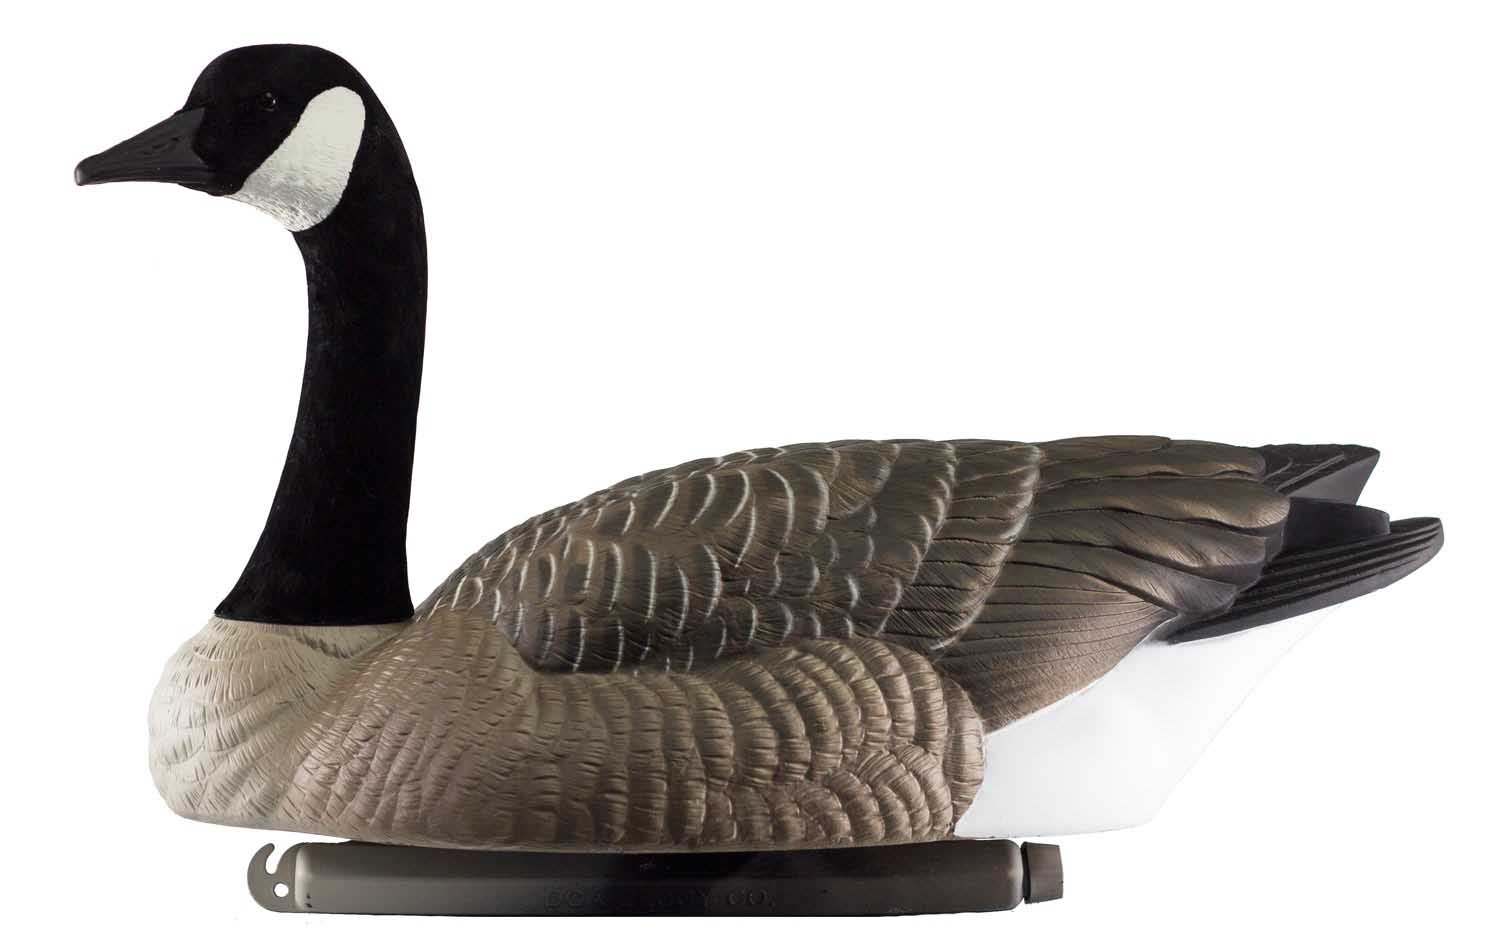 DOA Decoys Rogue Series Floating Goose Decoys, 6 Pack_2.jpg